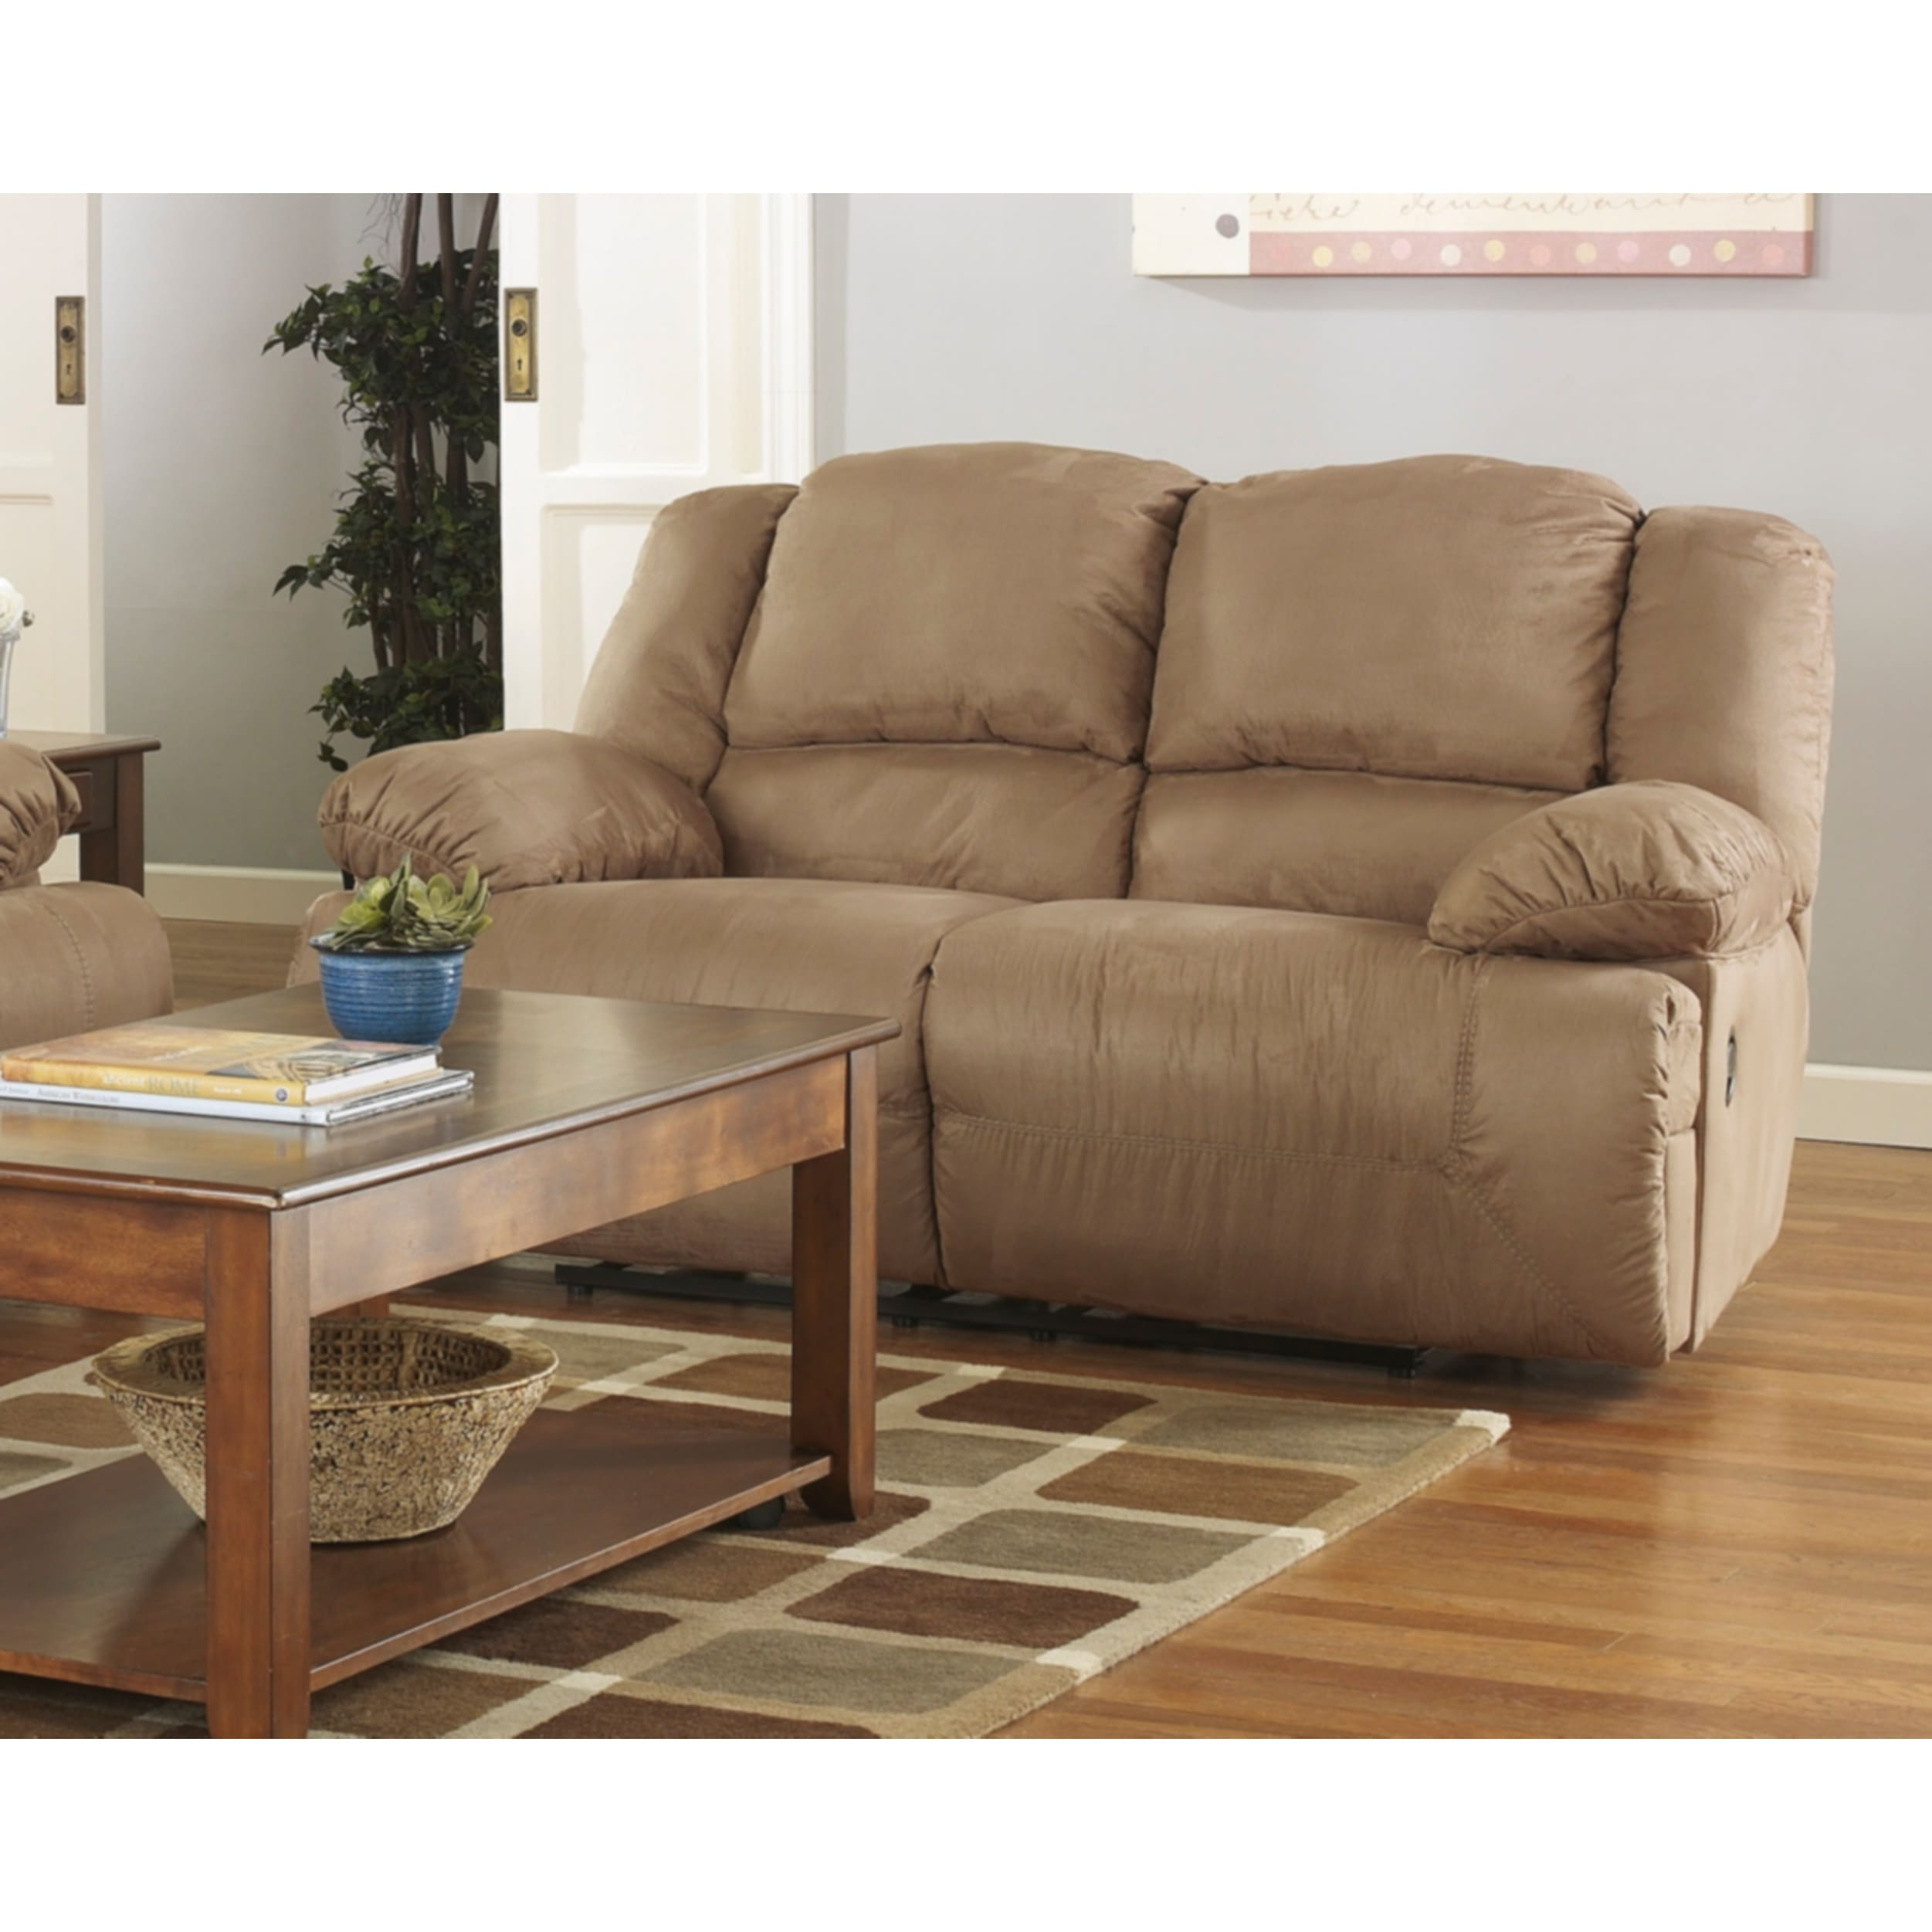 Ashley Hogan Mocha Reclining Loveseat (Hogan Mocha Reclin...